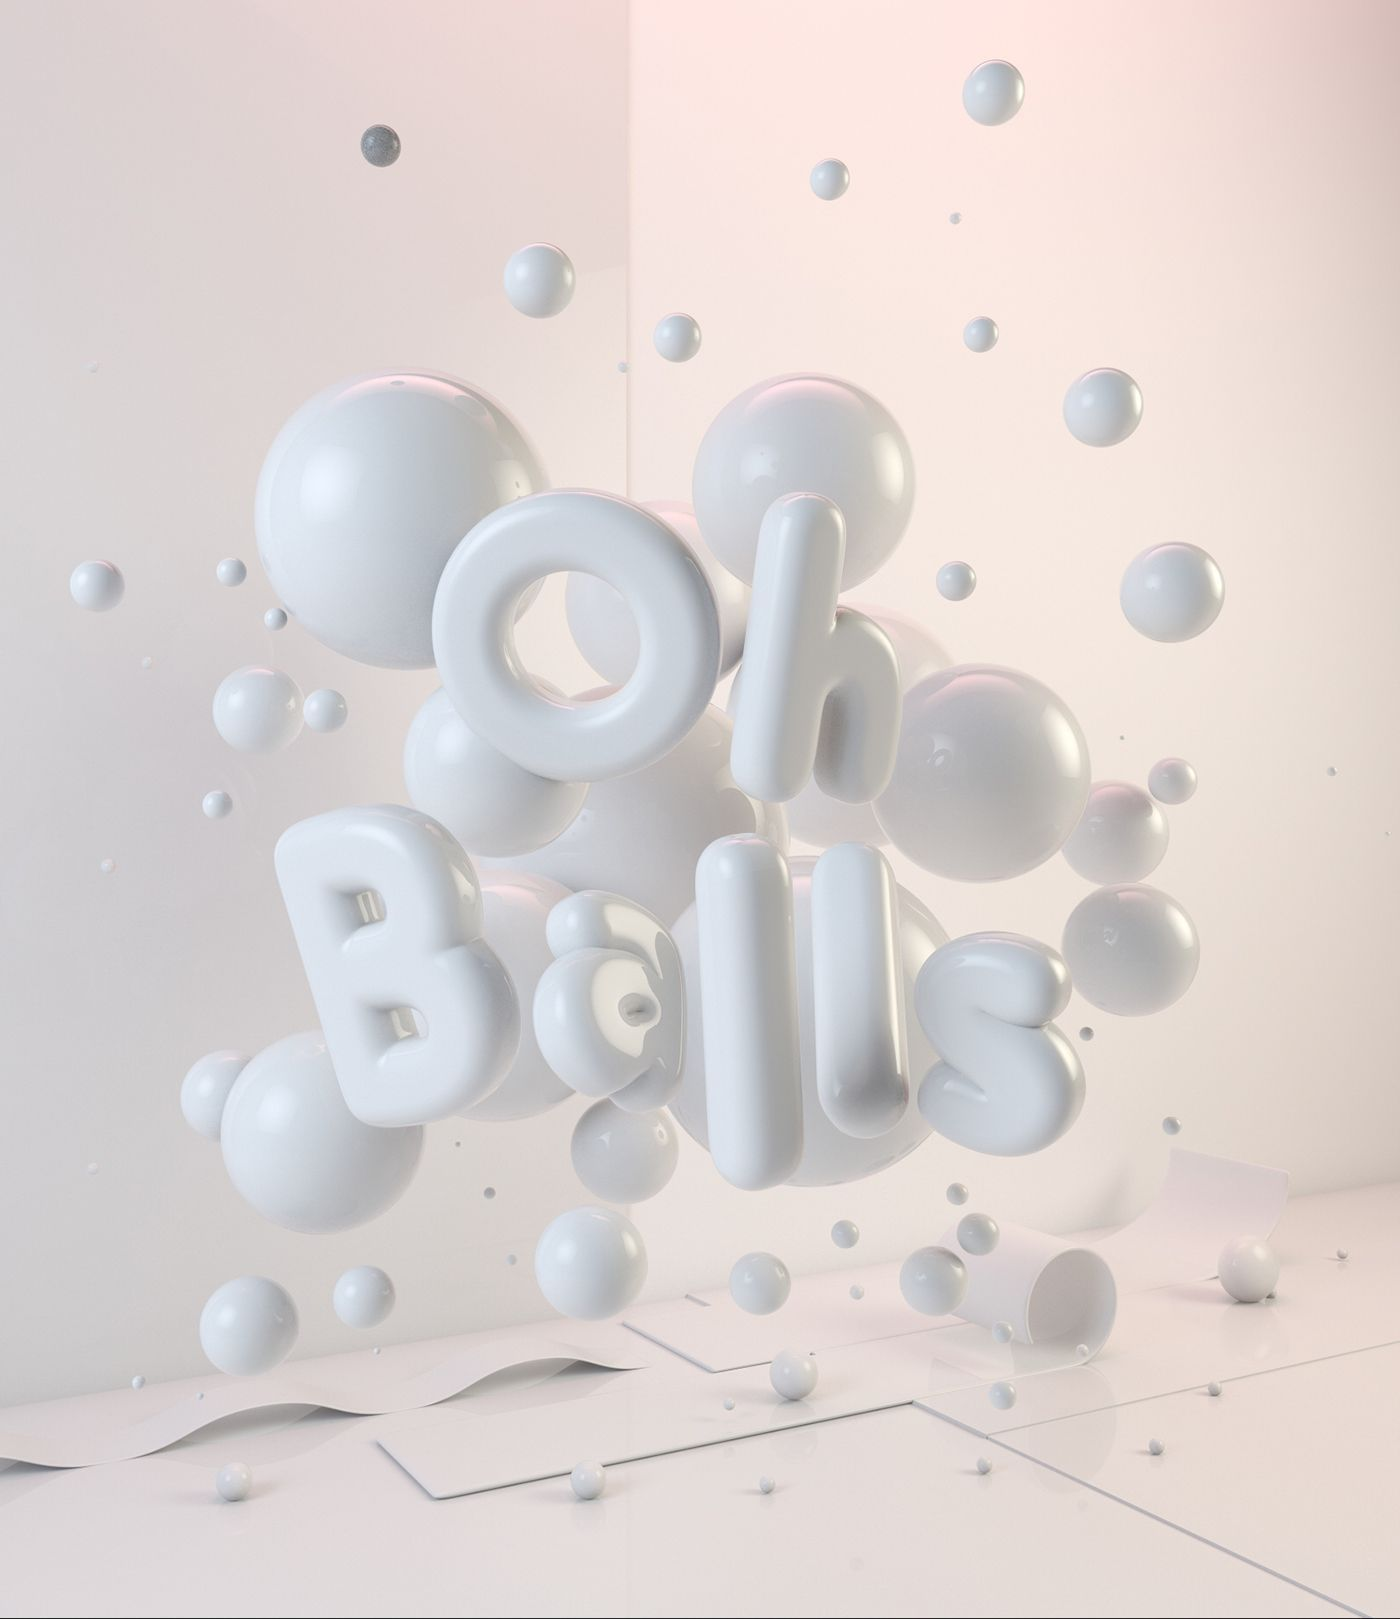 Self Initiated Project - Oh Balls, 3D Typography Artwork #3dtypography Self Initiated Project - Oh Balls, 3D Typography Artwork #3dtypography